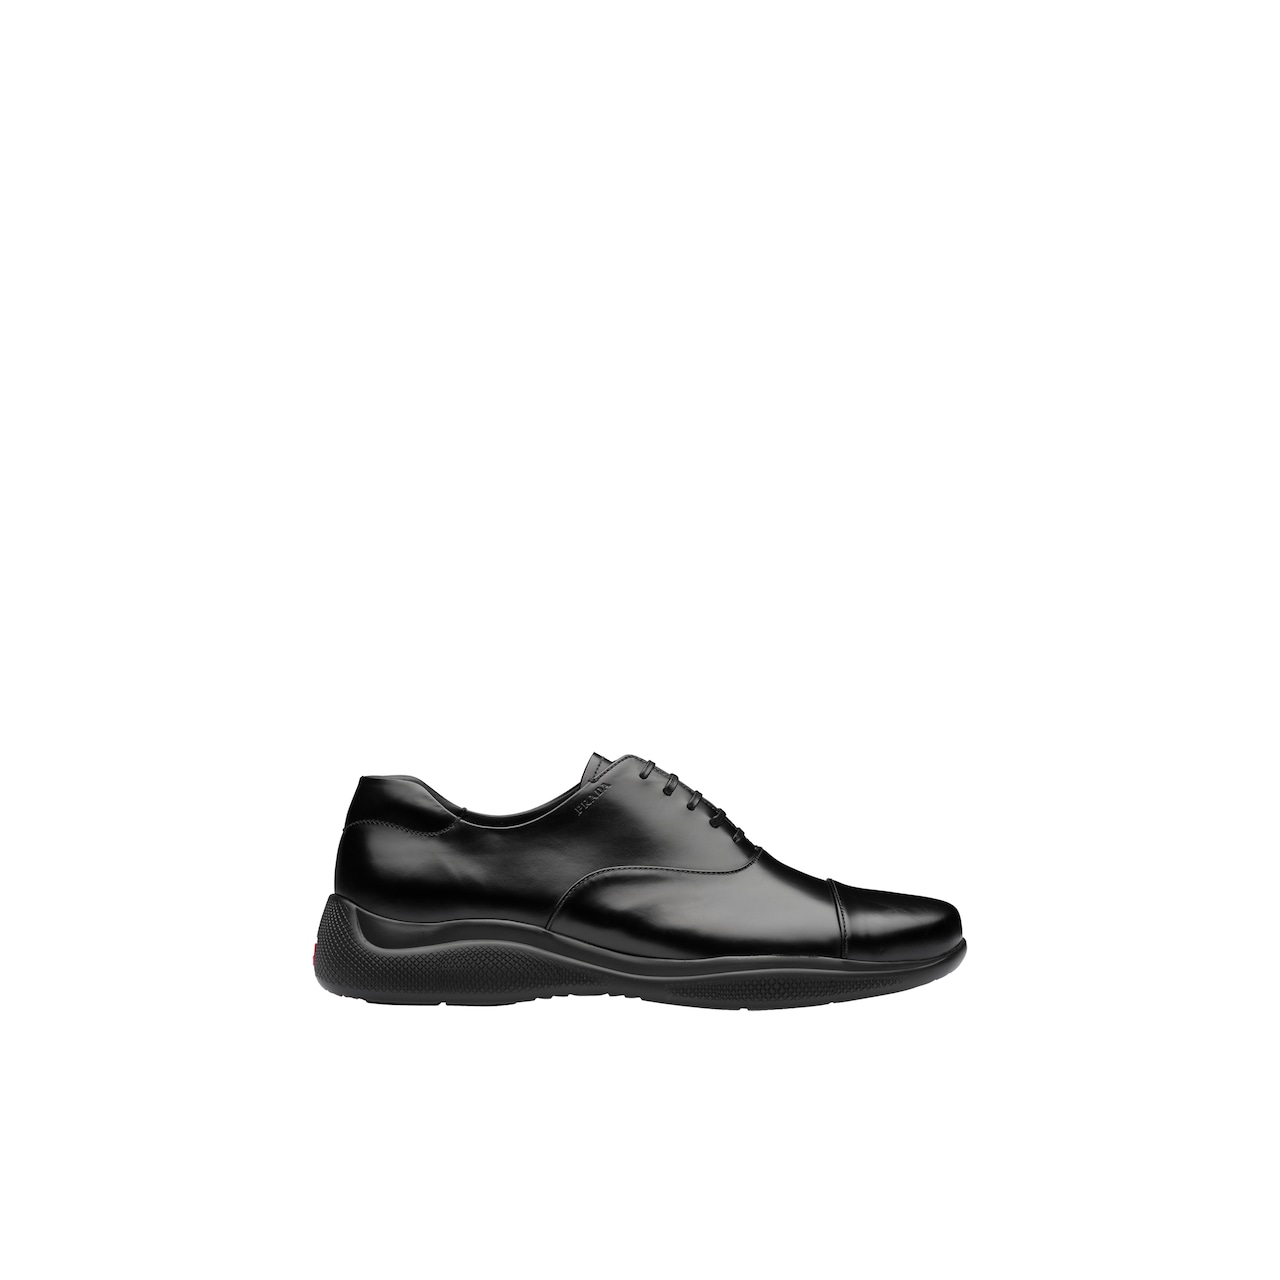 Prada Brushed leather Oxford shoes 2